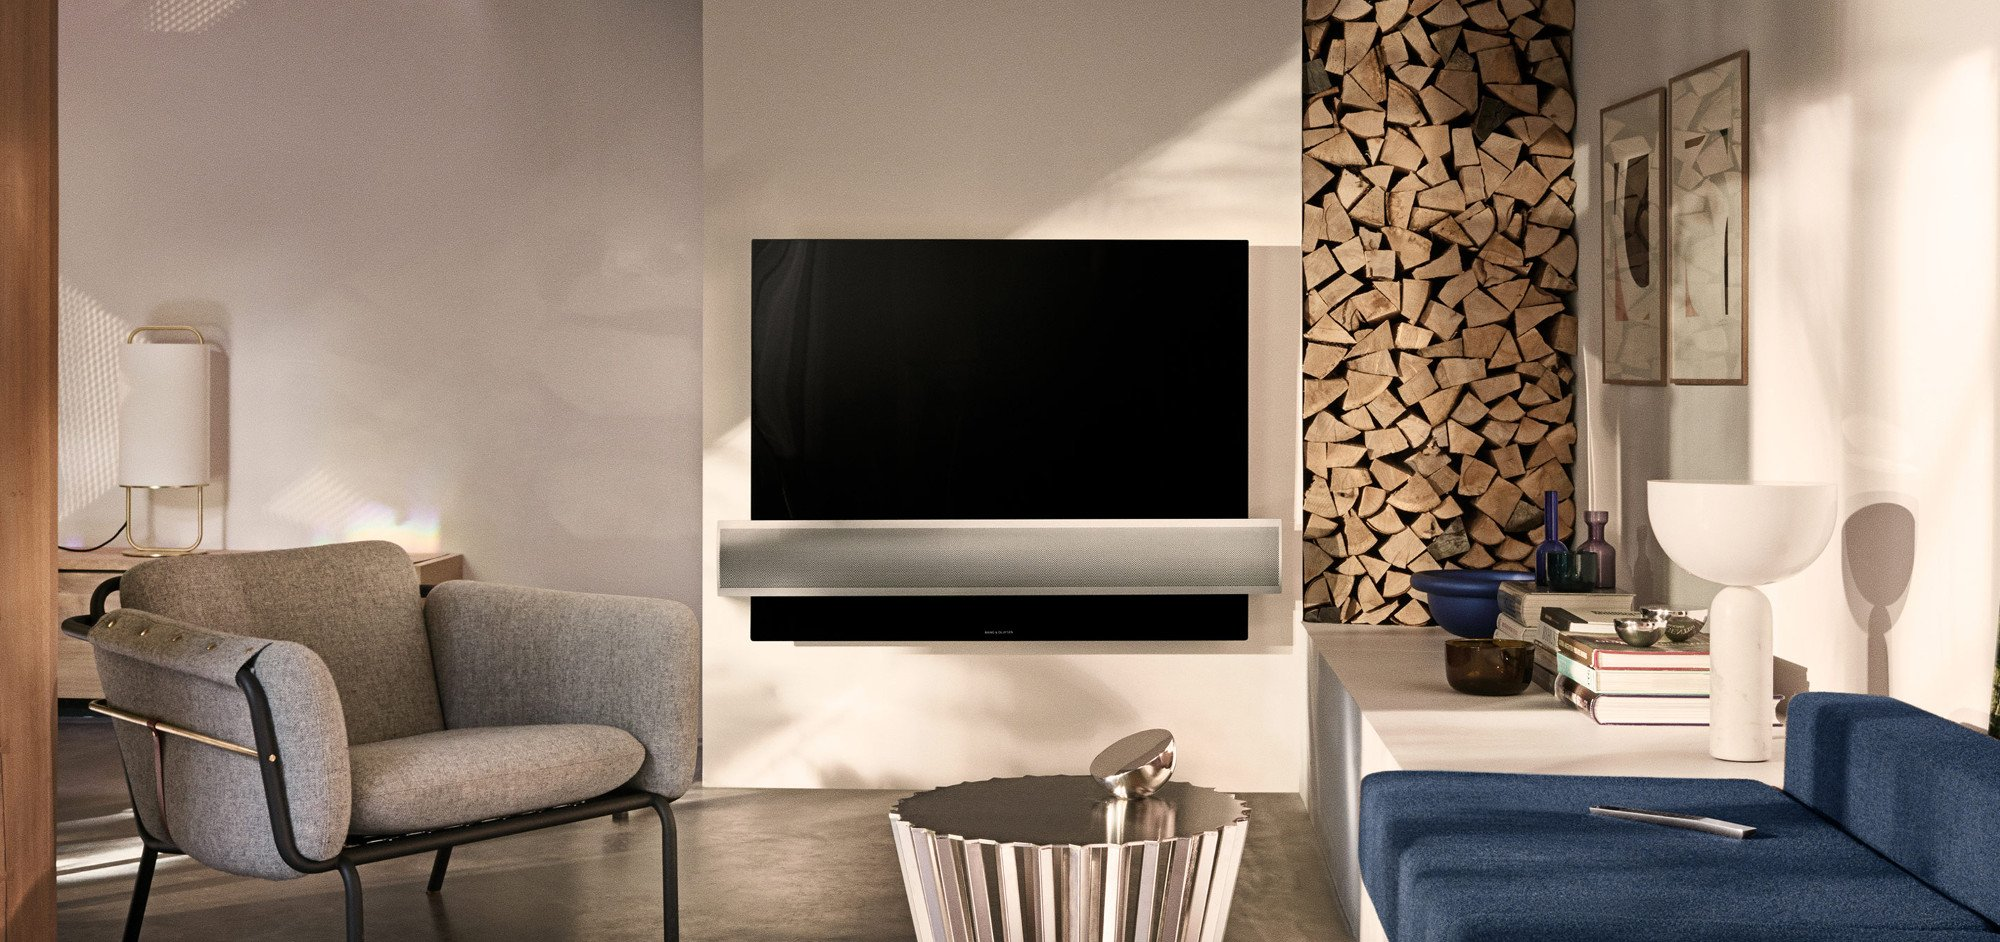 ifa trends jenseits der 4k fernseher helles oled hdr und. Black Bedroom Furniture Sets. Home Design Ideas